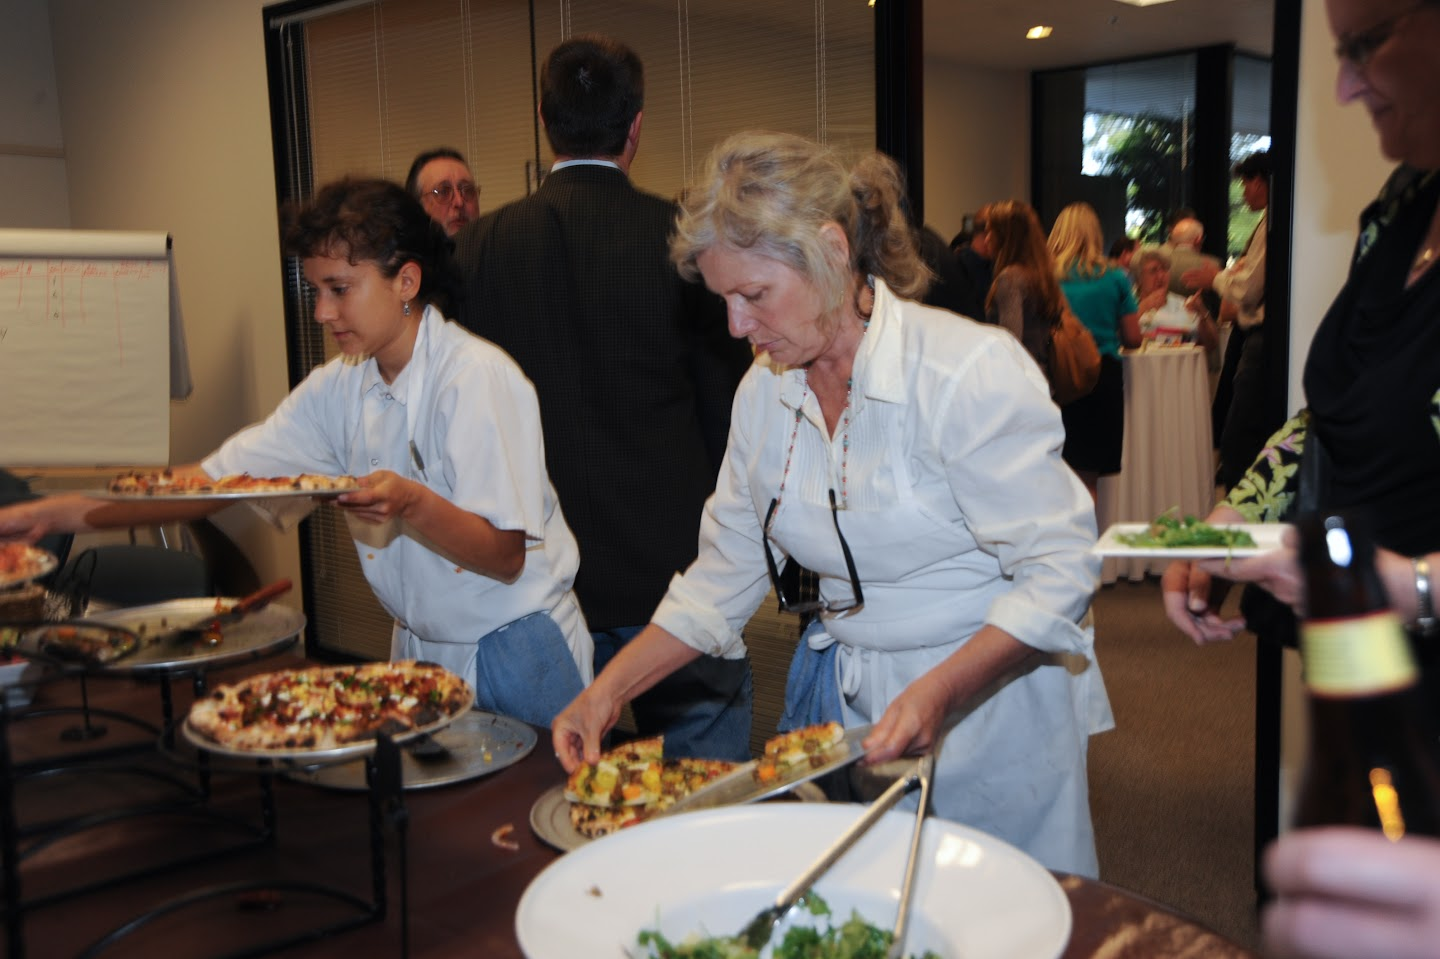 Rotary Means Business at Discovery Office with Rosso Pizzeria - DSC_6788.jpg